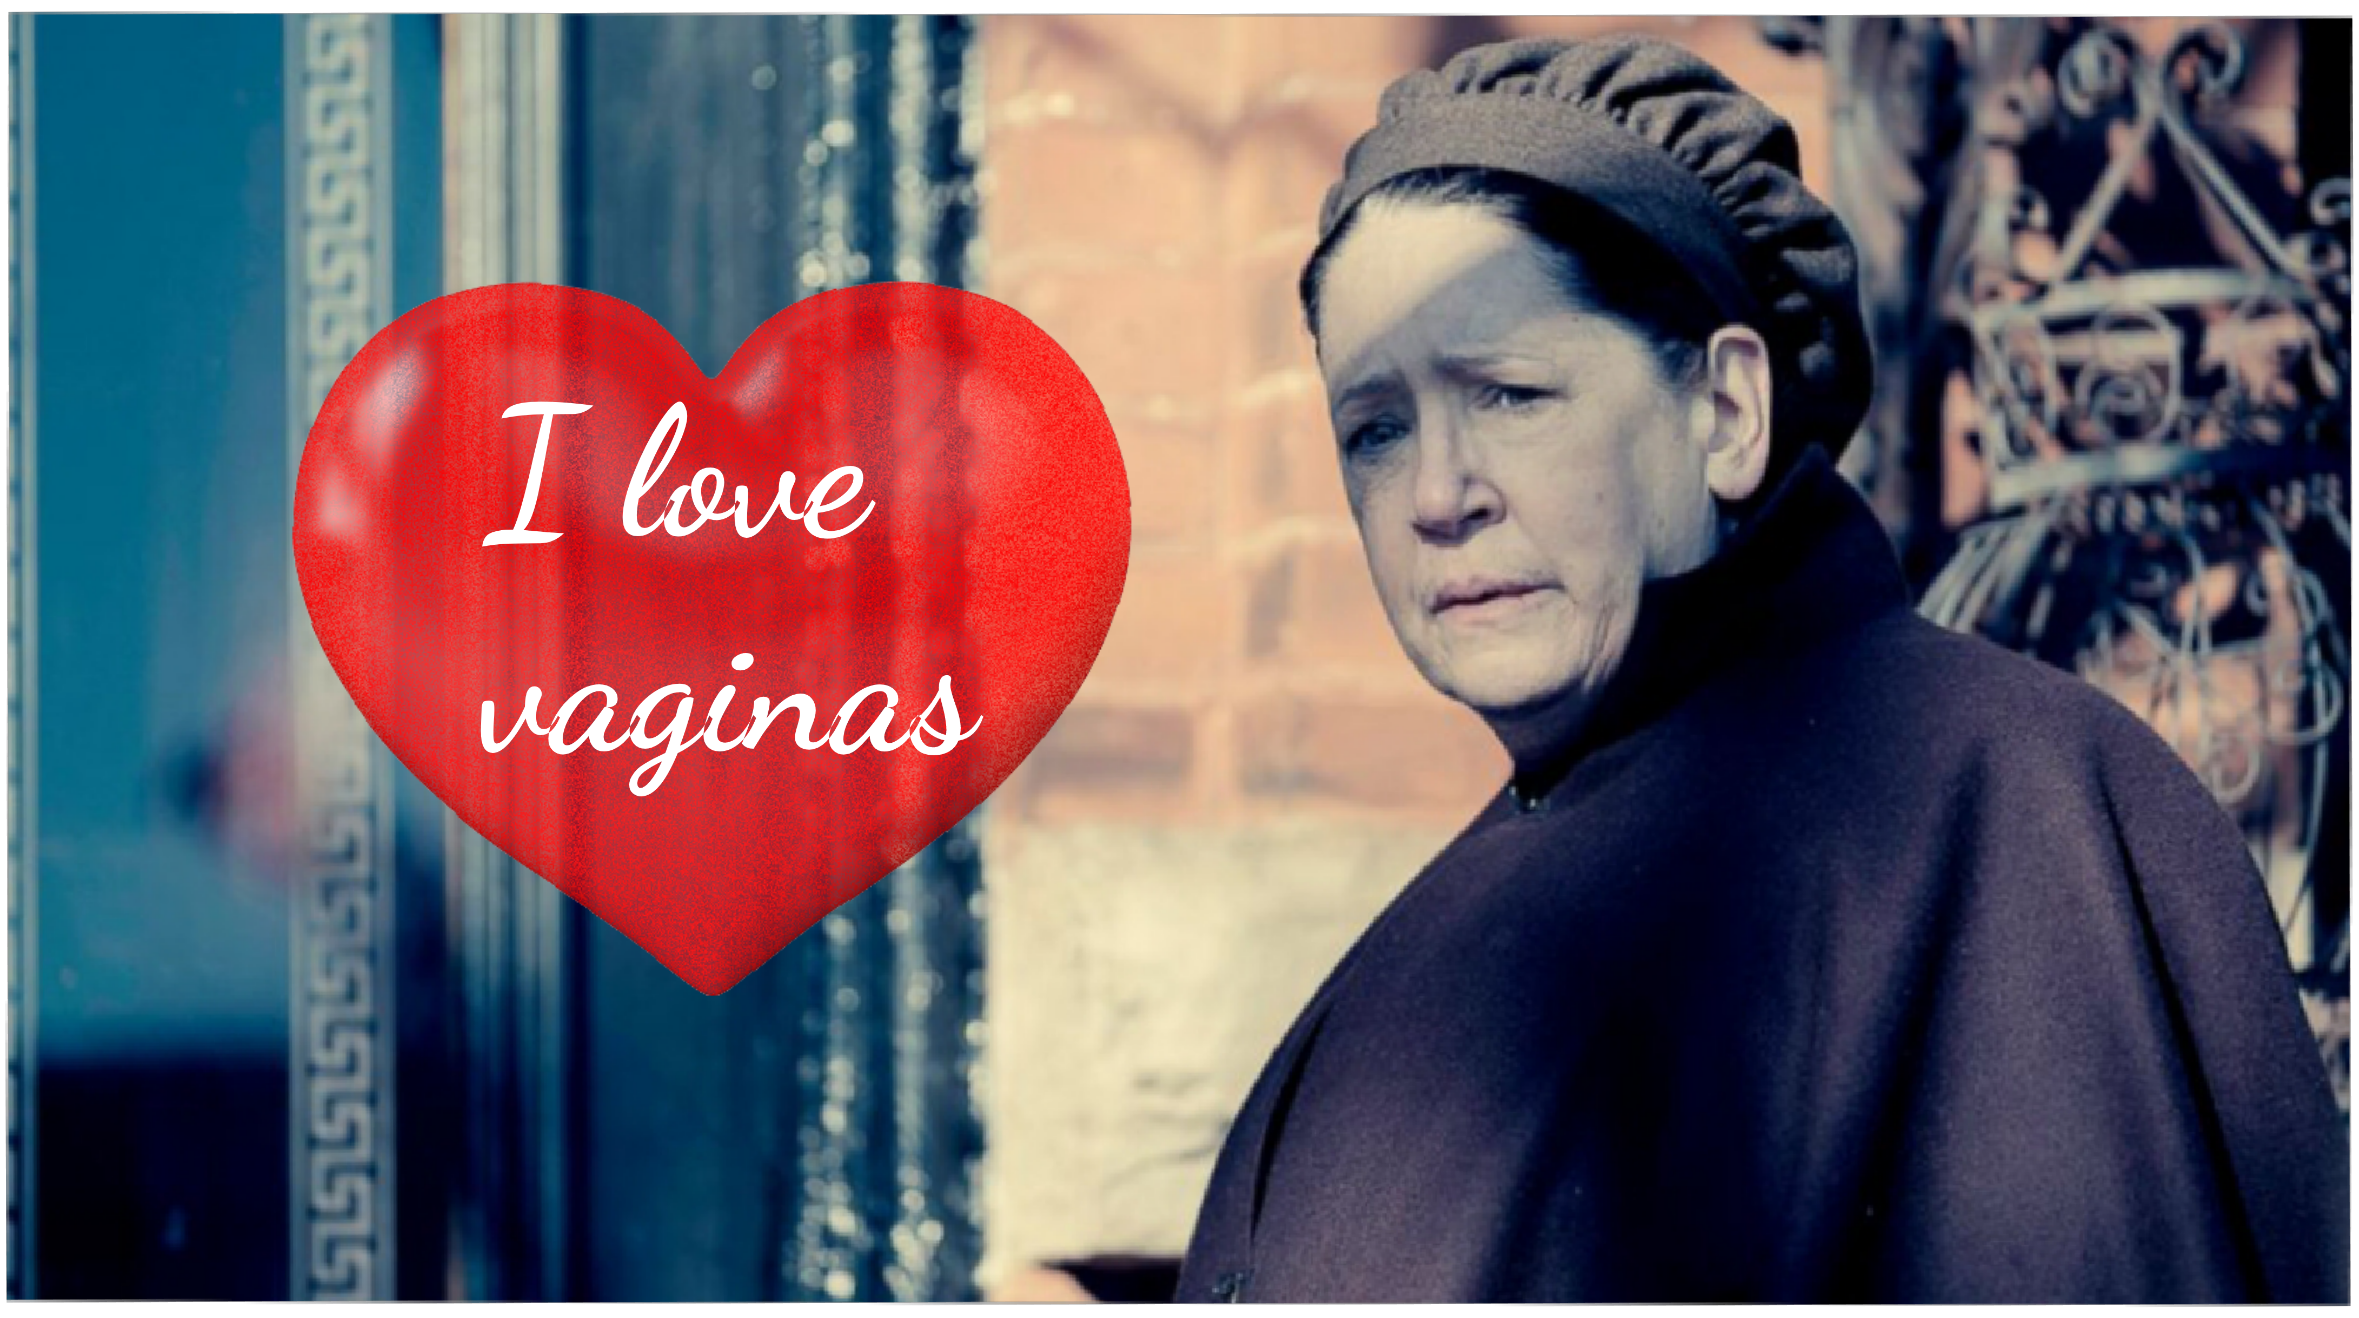 Aunt Lydia obsessed with vagina - Handmaid's Tale